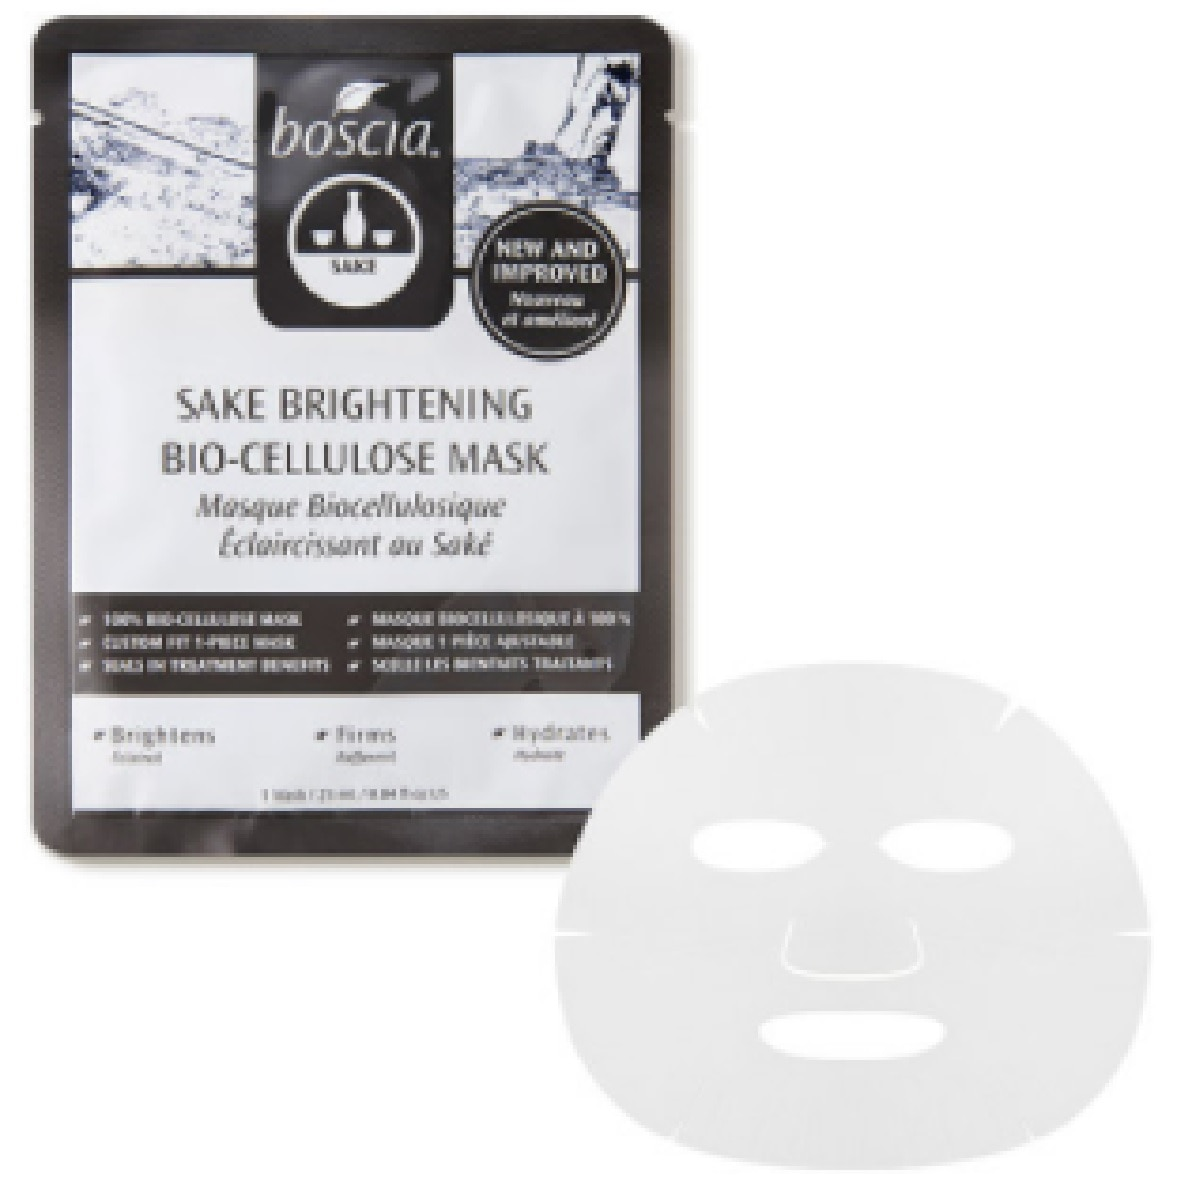 BOSCIA SAKE BRIGHTENING BIO-CELLULOSE MASK (MASCARILLA)